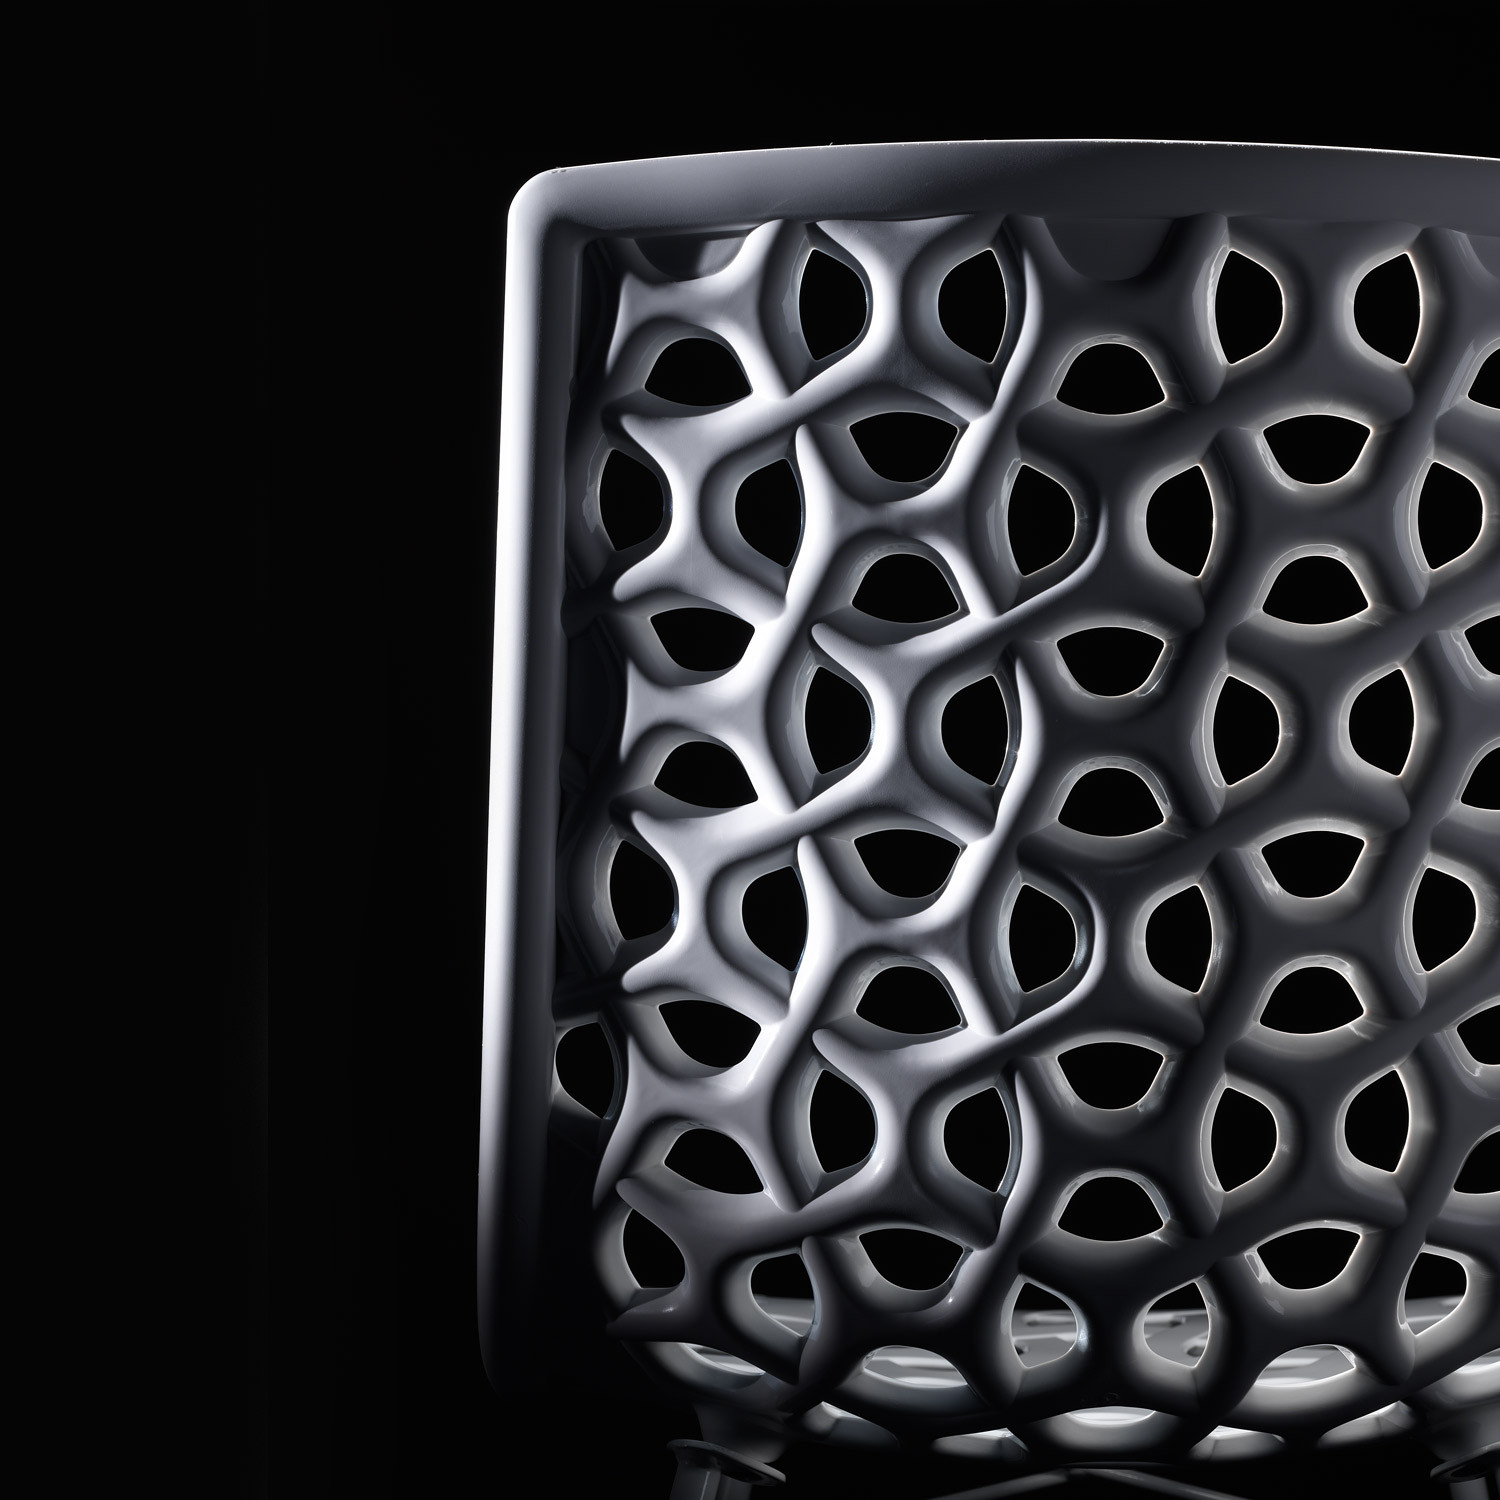 Tess.C Chair Manifold Weave Detail